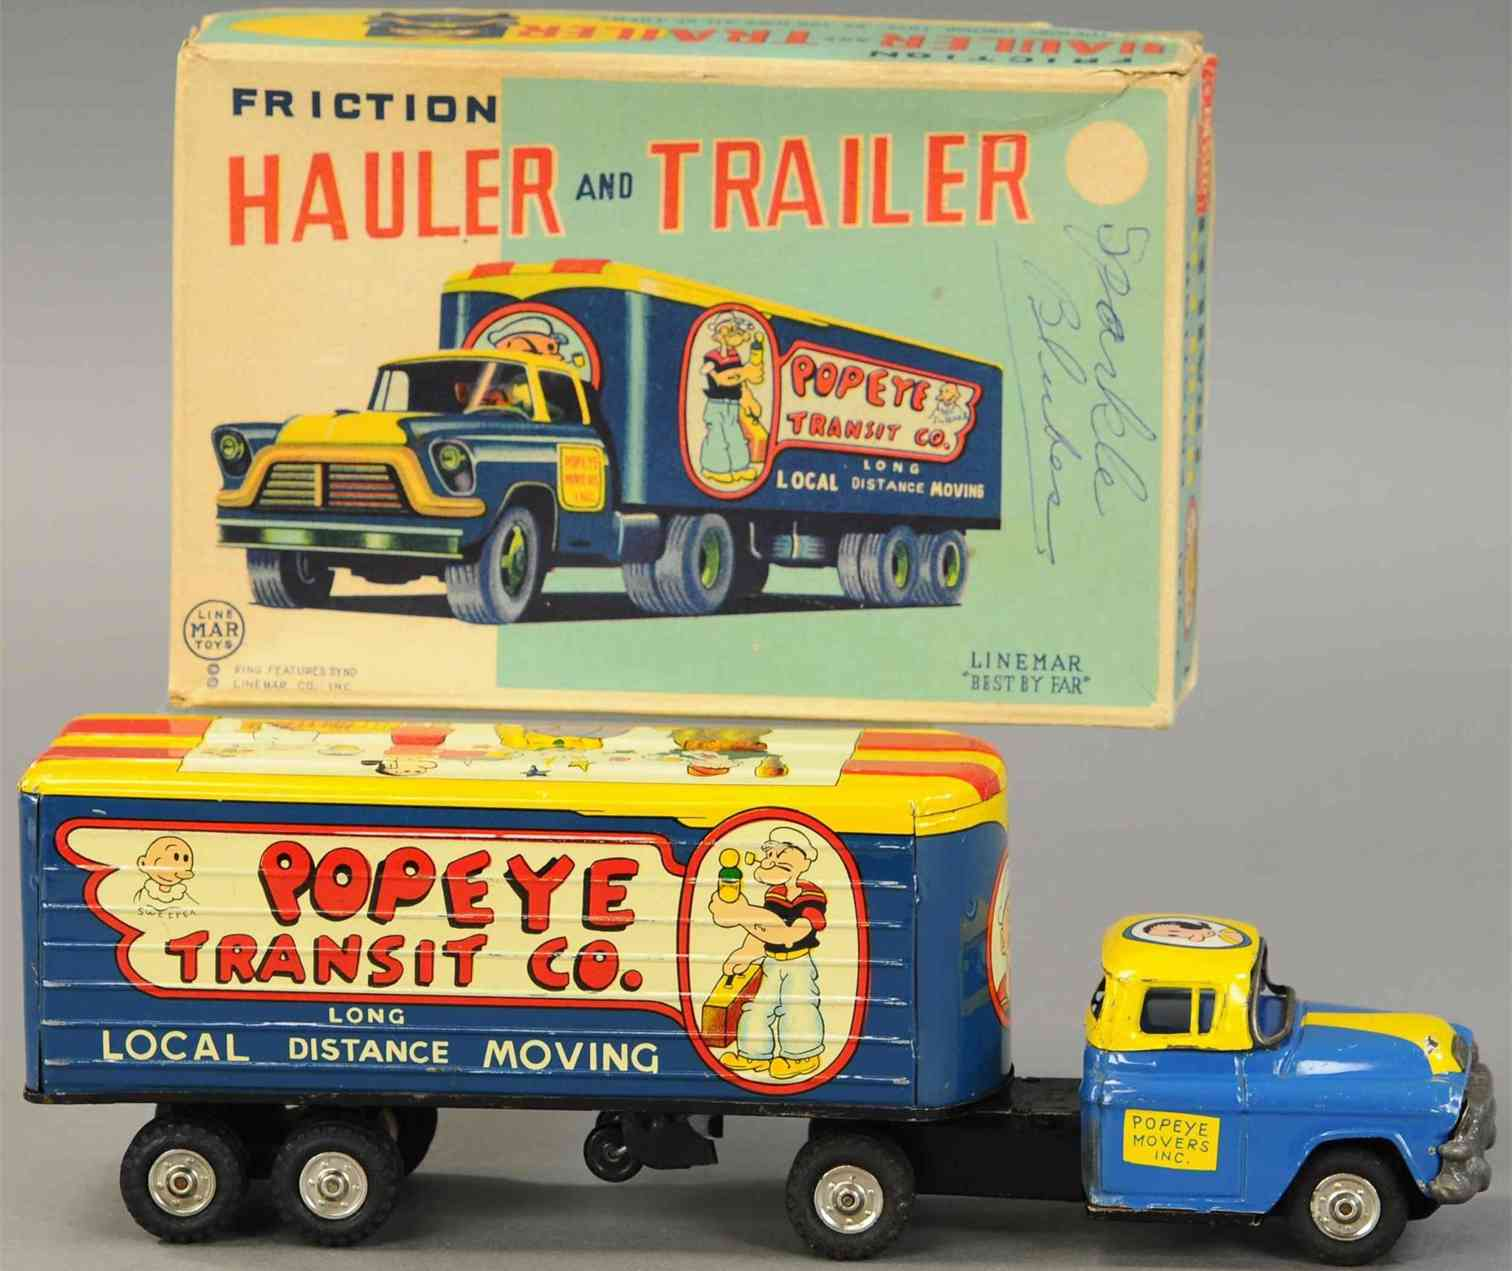 linemar tin toy popeye transit moving truck fricition